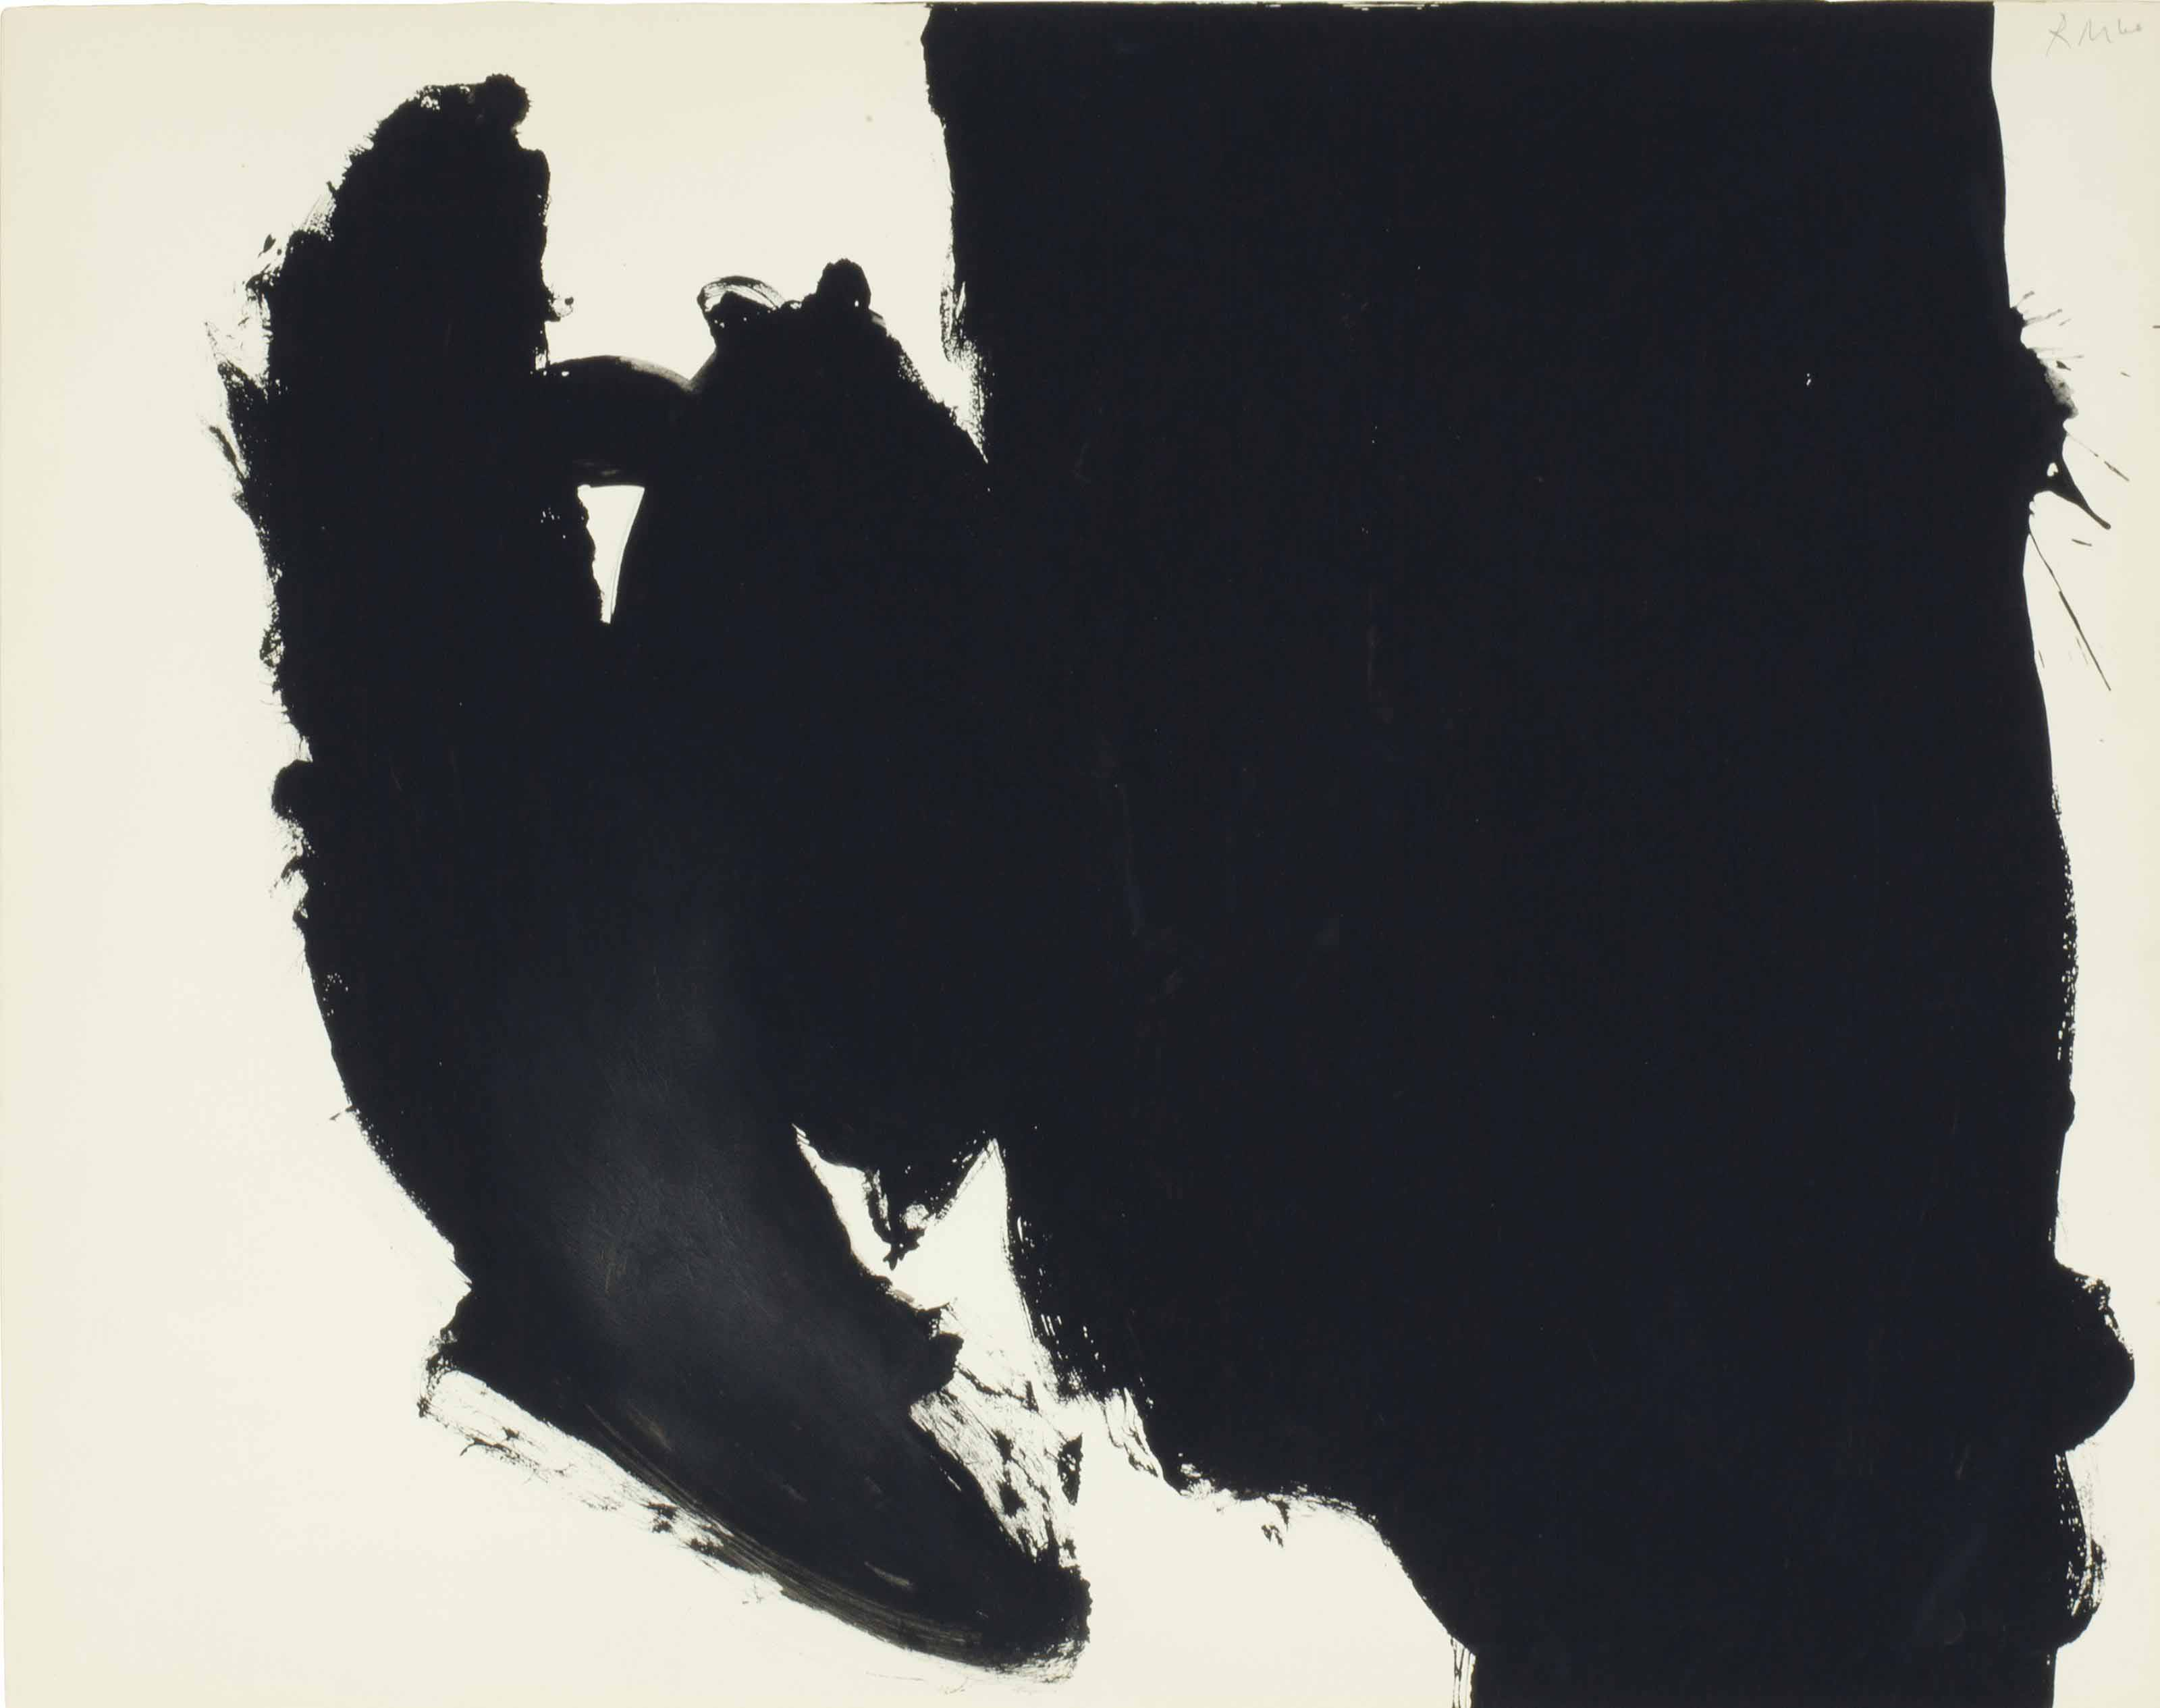 Robert Motherwell (1915-1991)